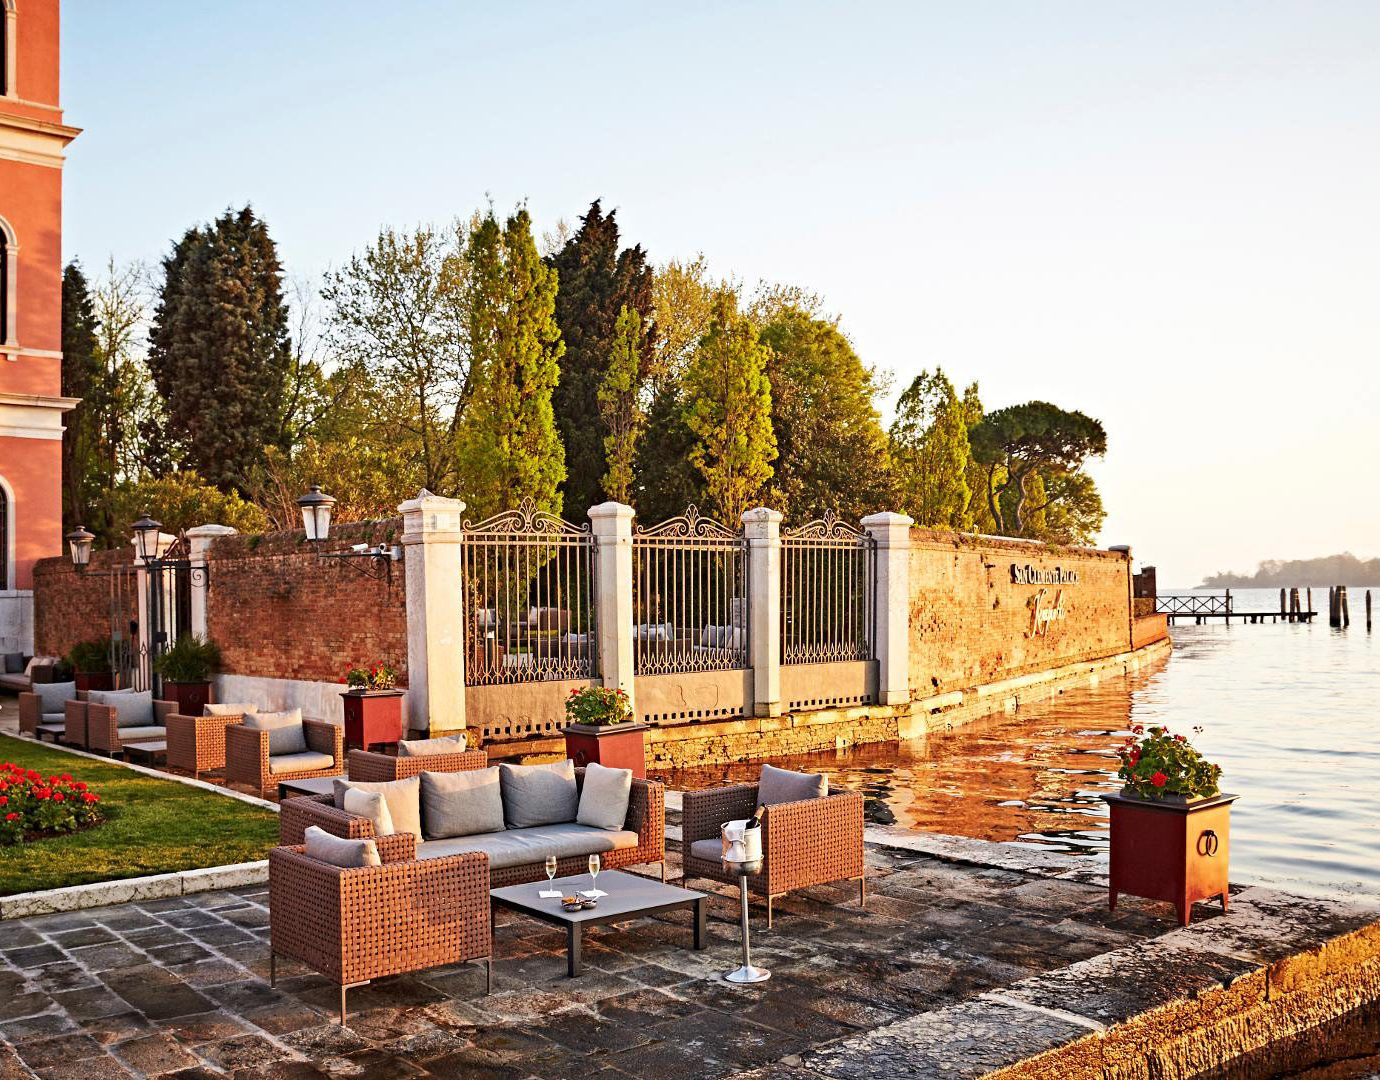 Hotels Italy Luxury Travel Venice sky Town waterway travel stone